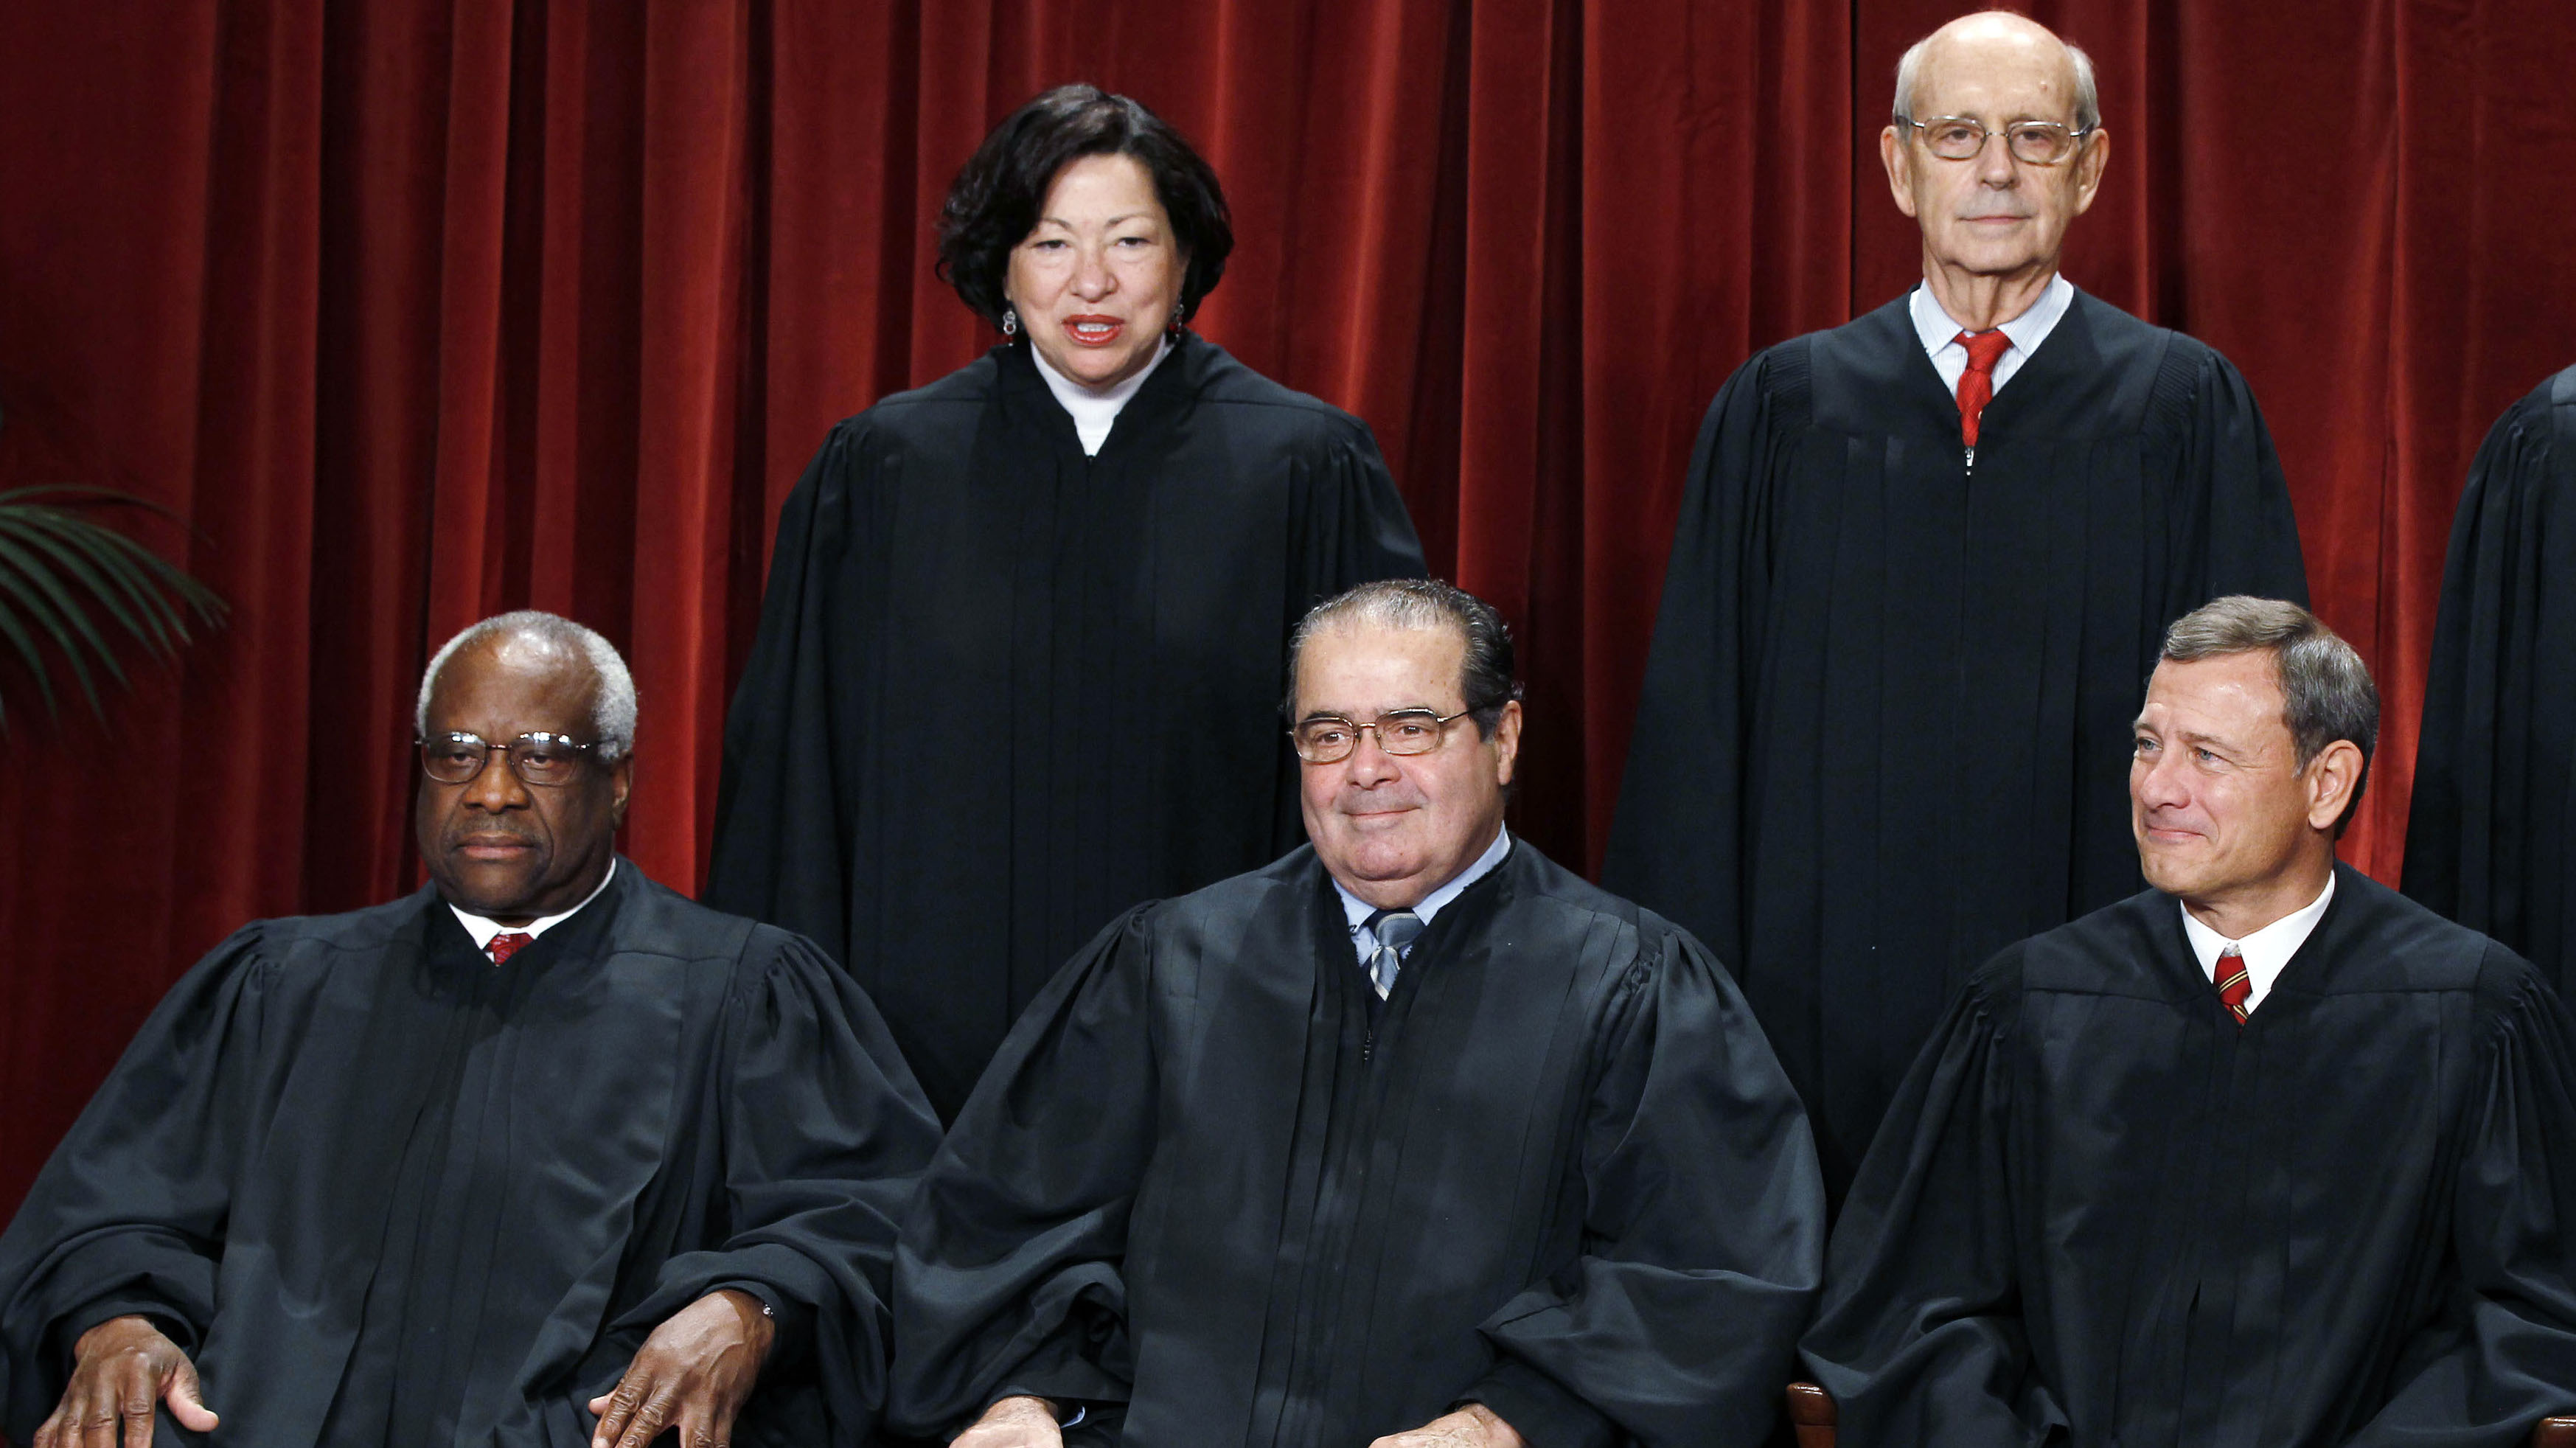 The justices of the U.S. Supreme Court gather for a group portrait in the East Conference Room at the Supreme Court Building in Washington